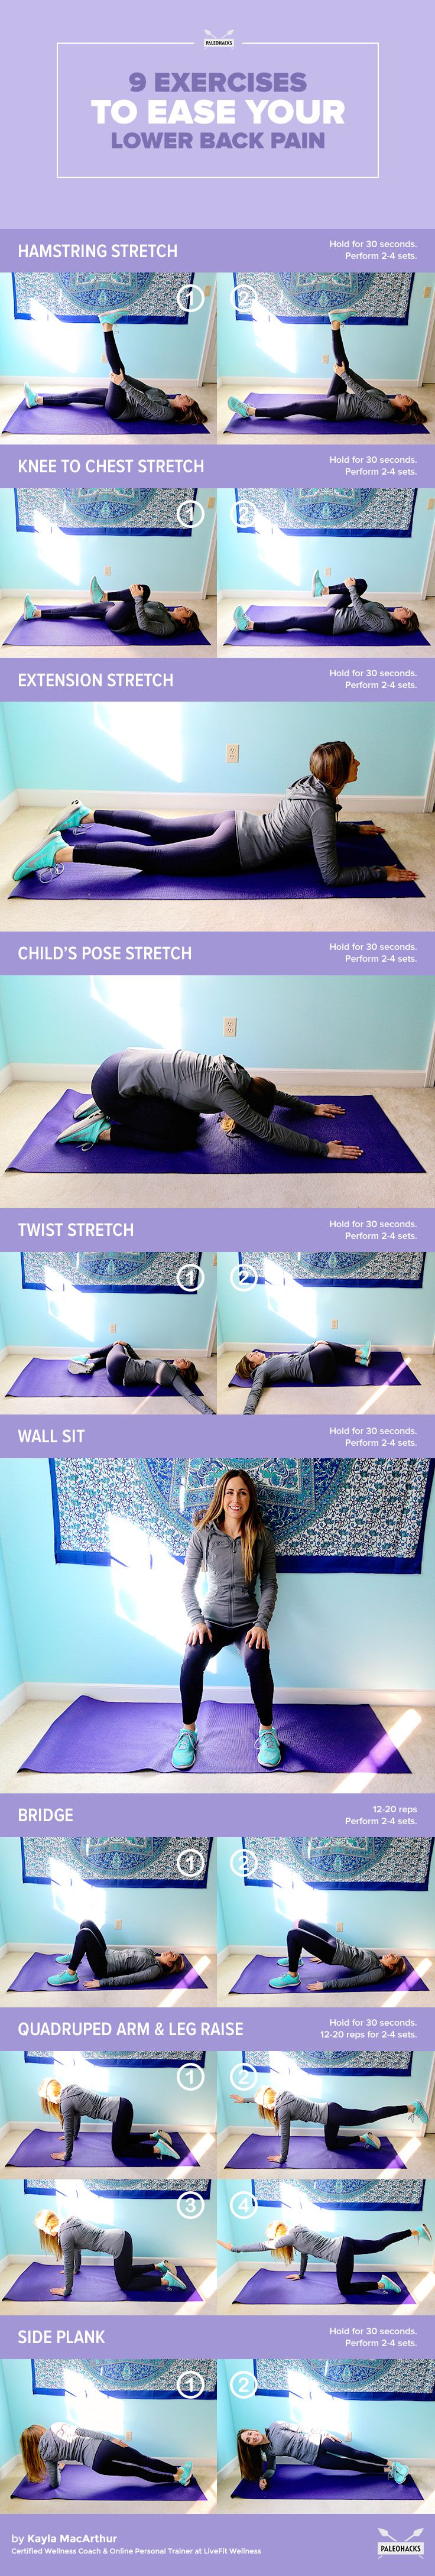 9 Simple Exercises for Lower Back Pain Relief. The ZestDesk helps your health by letting you stand more and adjust it to the height you prefer. Did we say it's also lightweight, handy and durable? Pre-order now by clicking here: https://www.zestdesk.com/